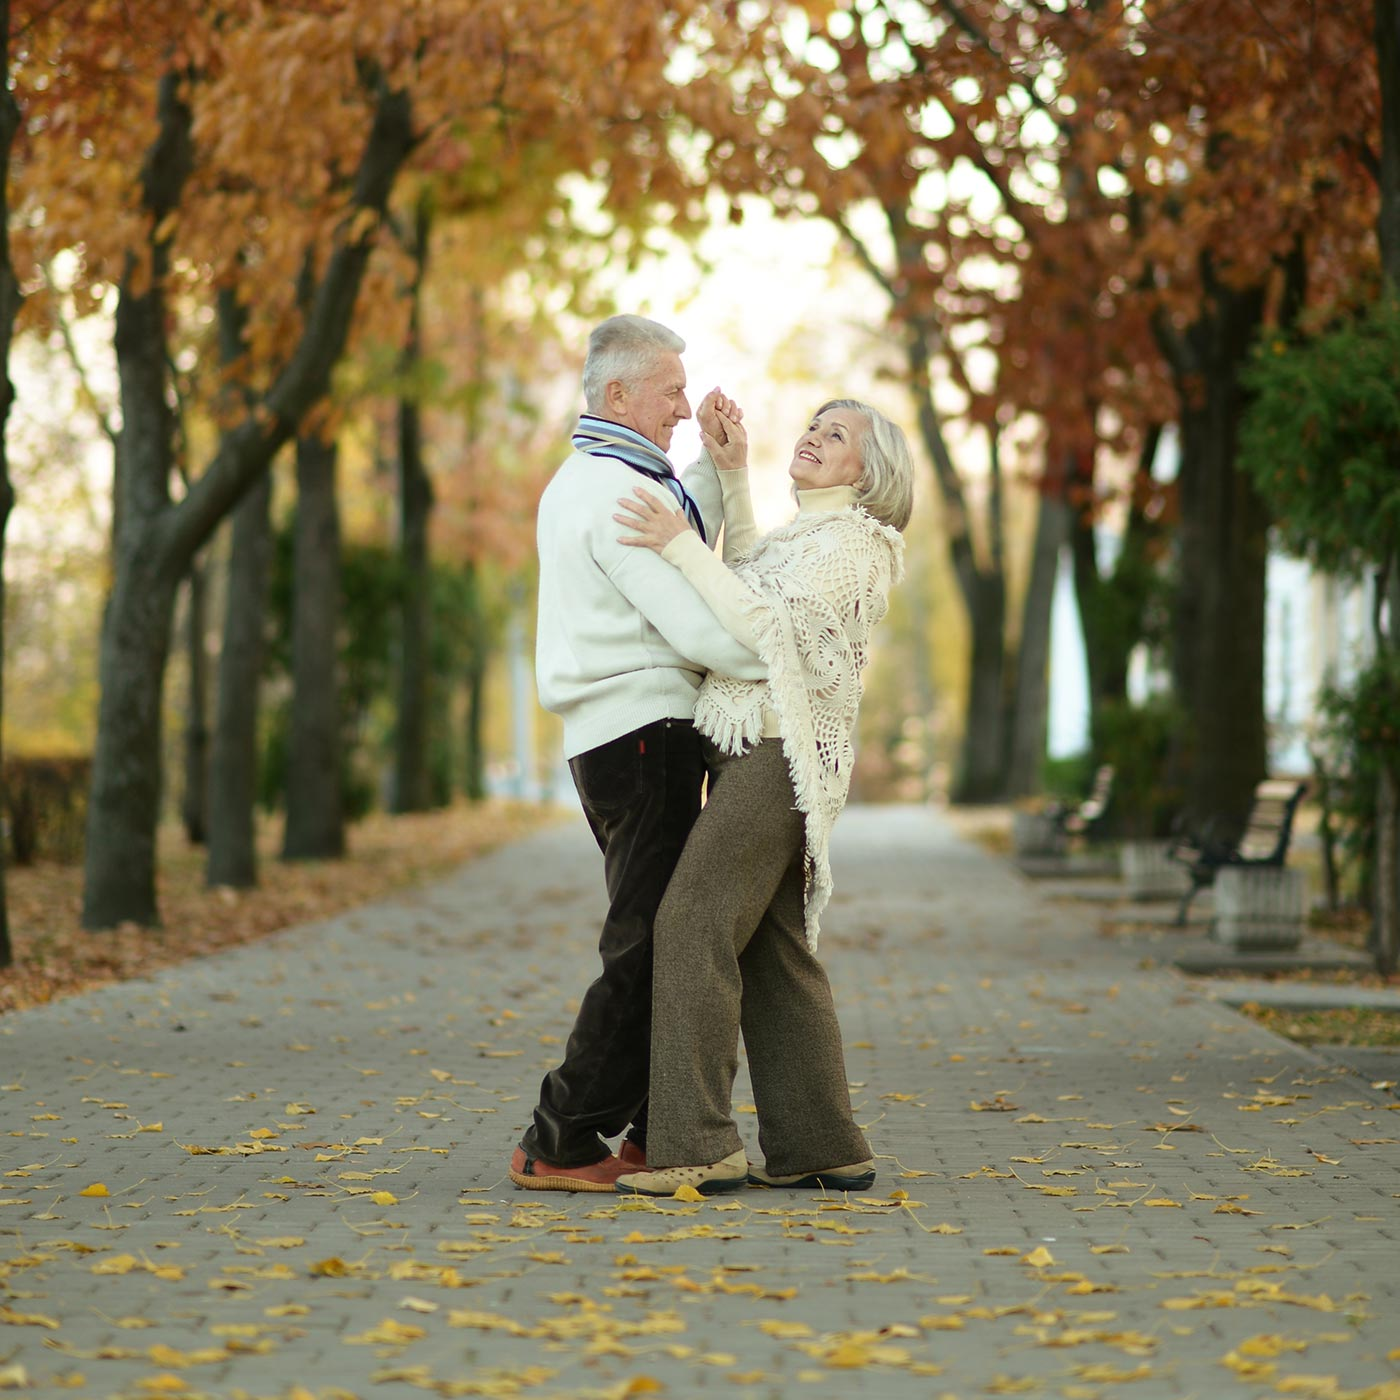 Ecommerce Business Ideas for Retirees